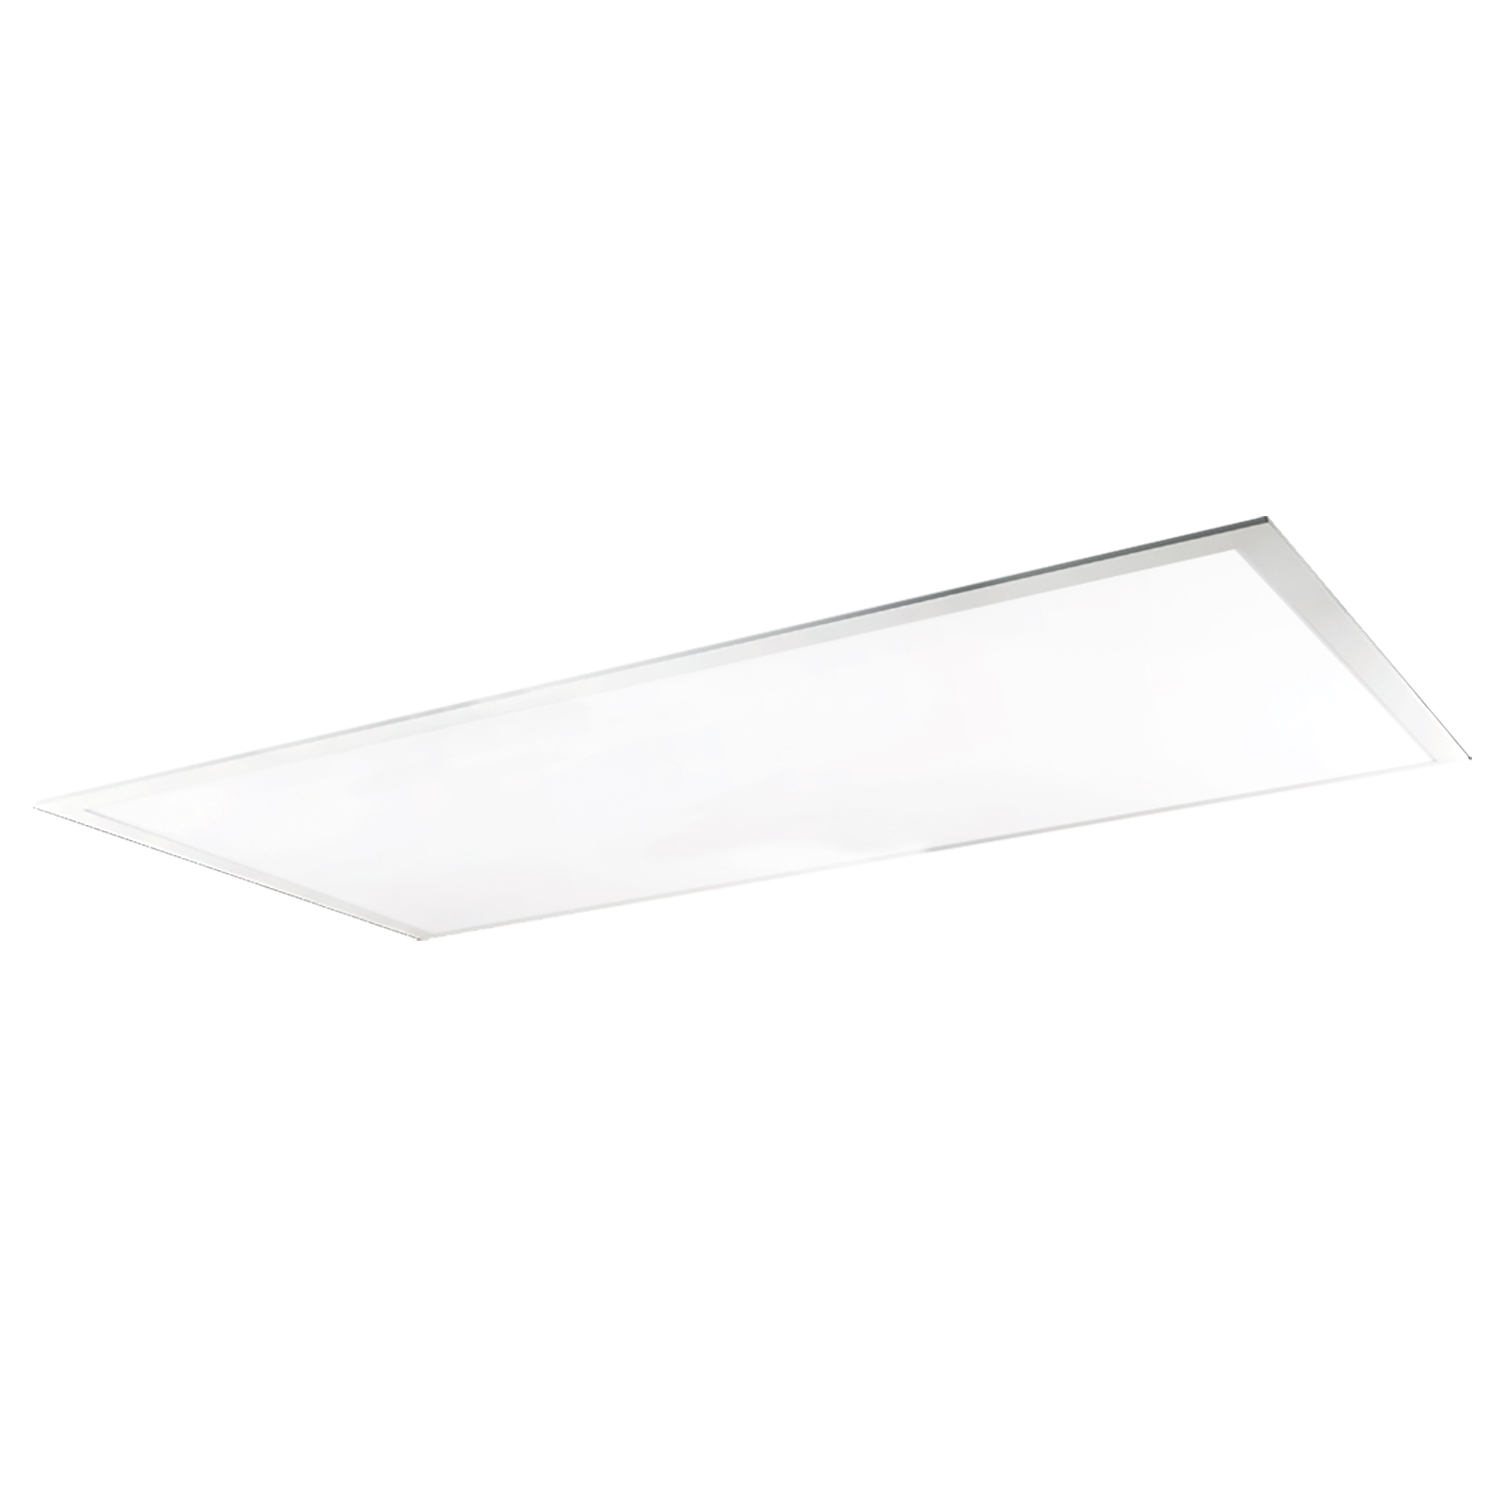 14EPL40/840/EM/LED 81989 ProLED EDGE-LIT FLAT PANEL 1X4 40W 4000K 0-10V DIMMABLE w/Battery Backup